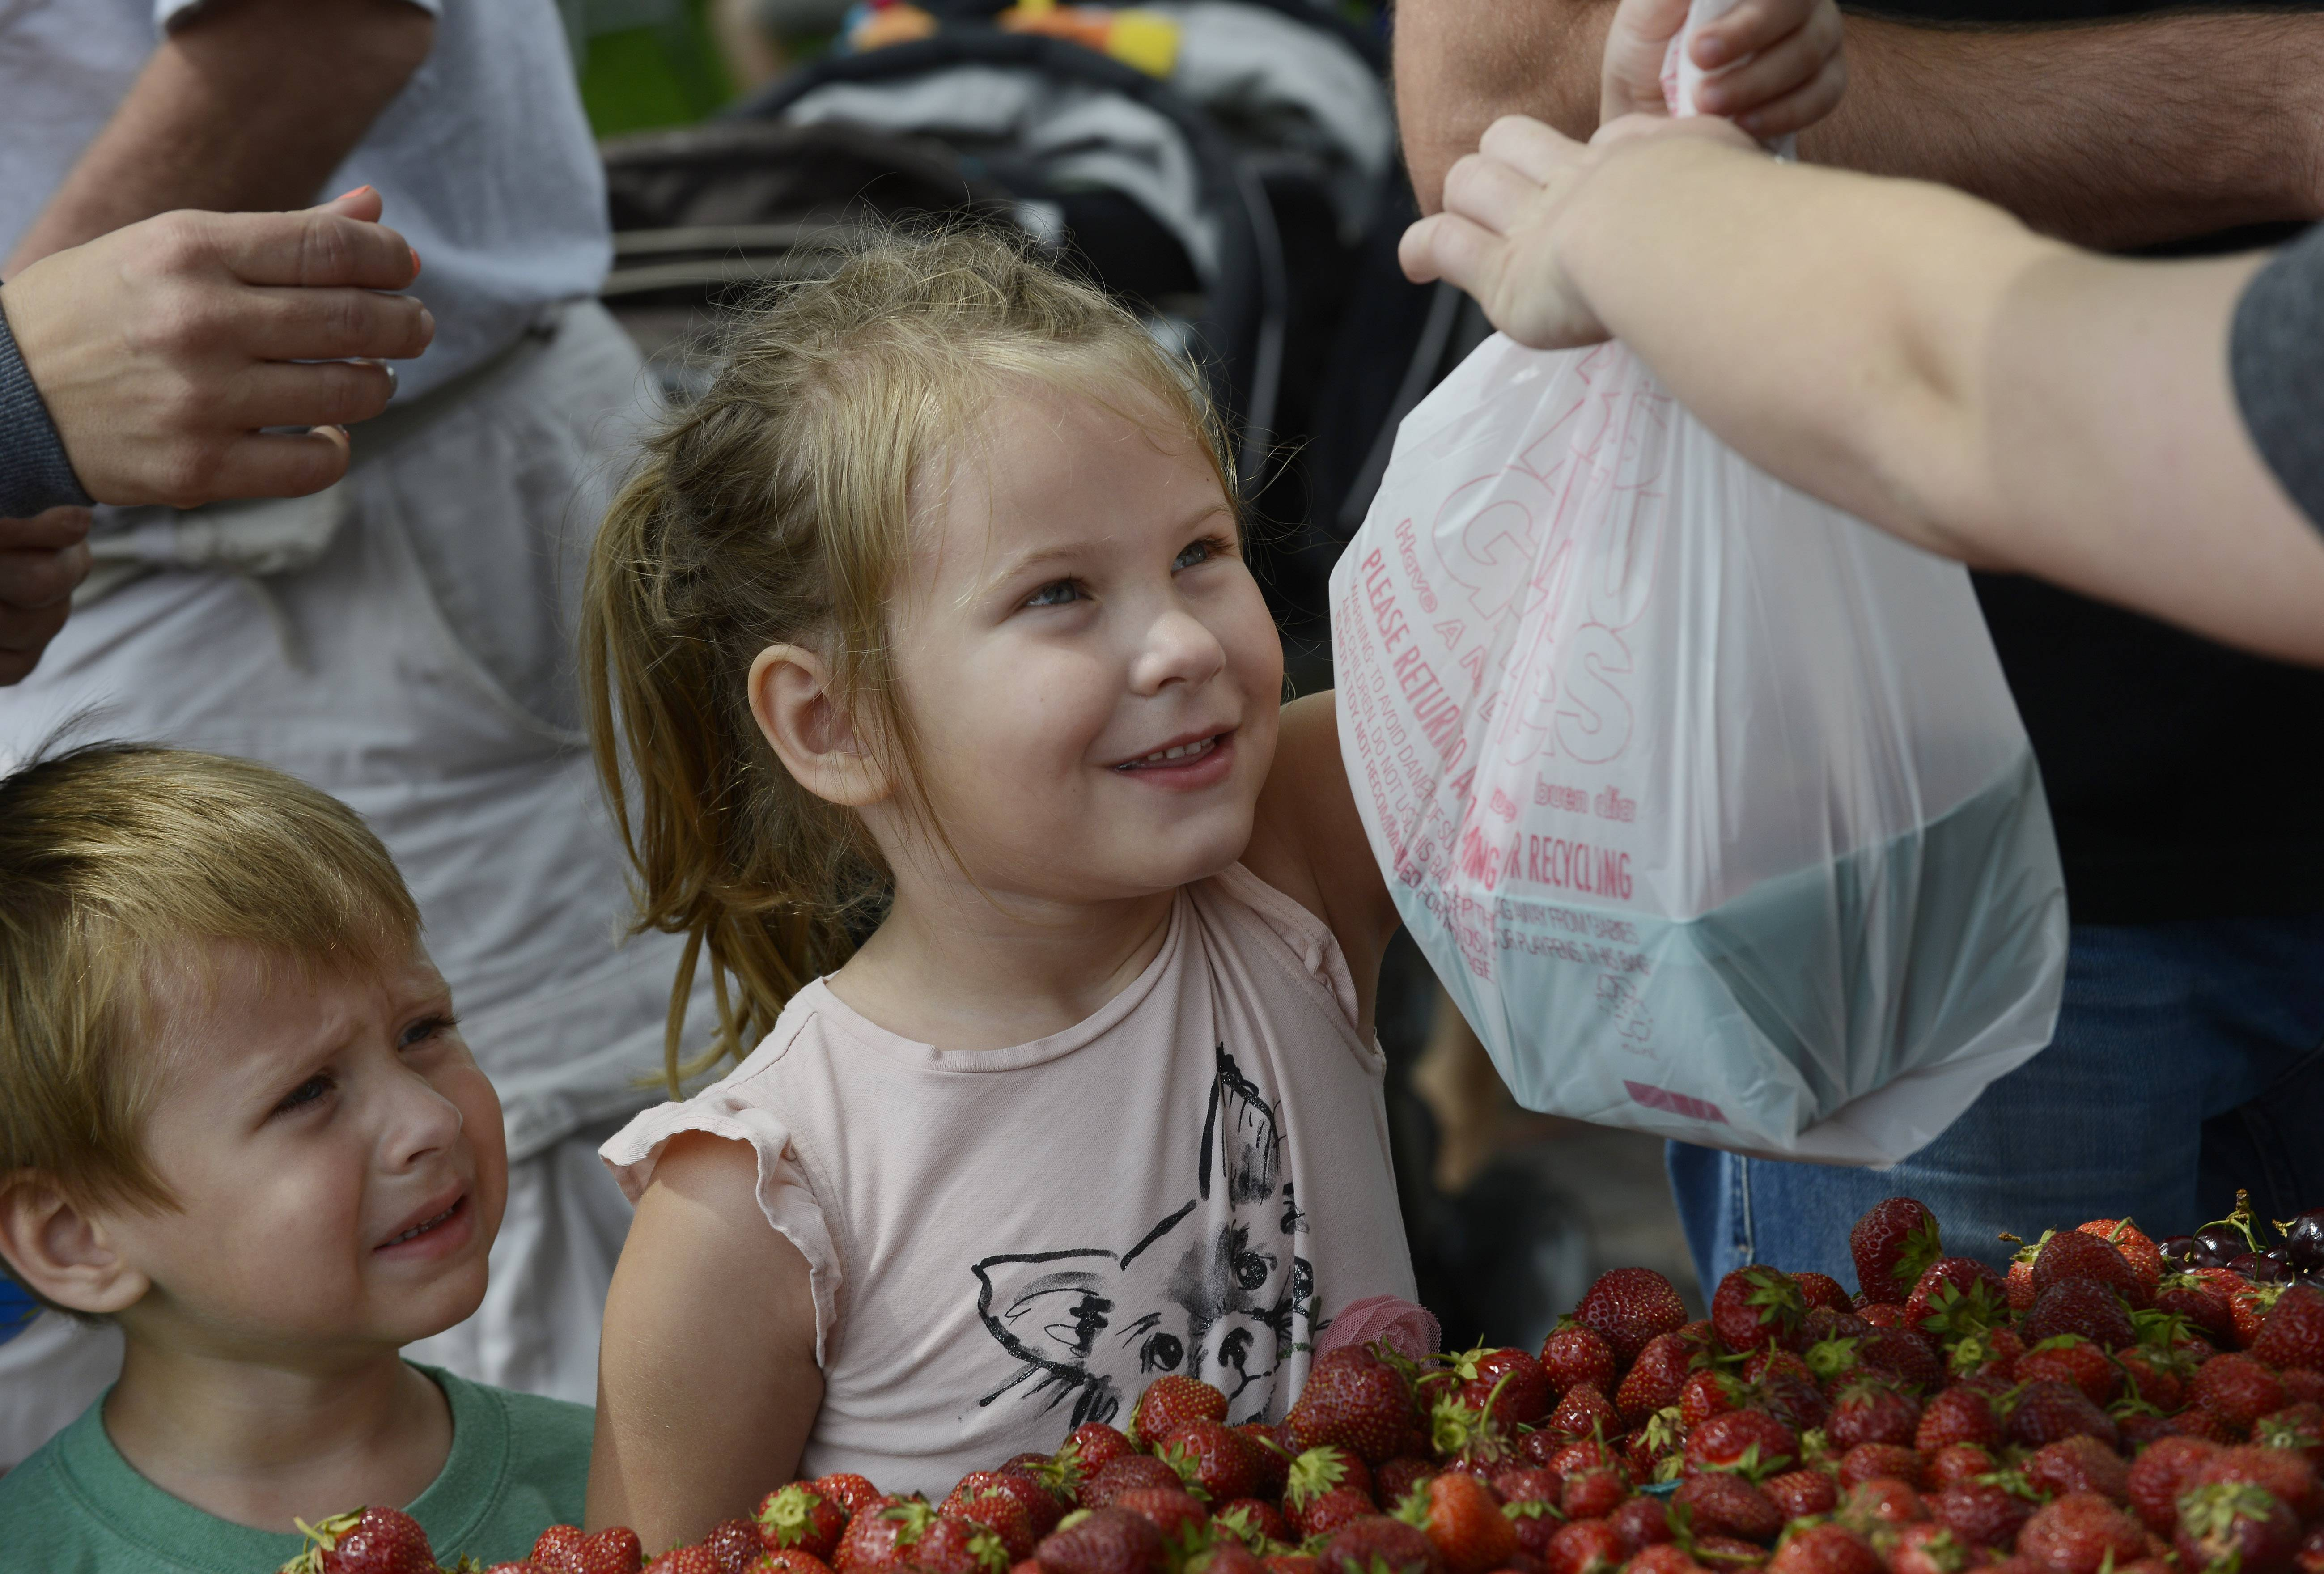 Vanessa Miecznikowski, 5, of Long Grove receives a bag of strawberries that she and her brother, Max, 3, selected at the Frank Farms Fresh Produce table during the Long Grove Strawberry Festival Saturday.